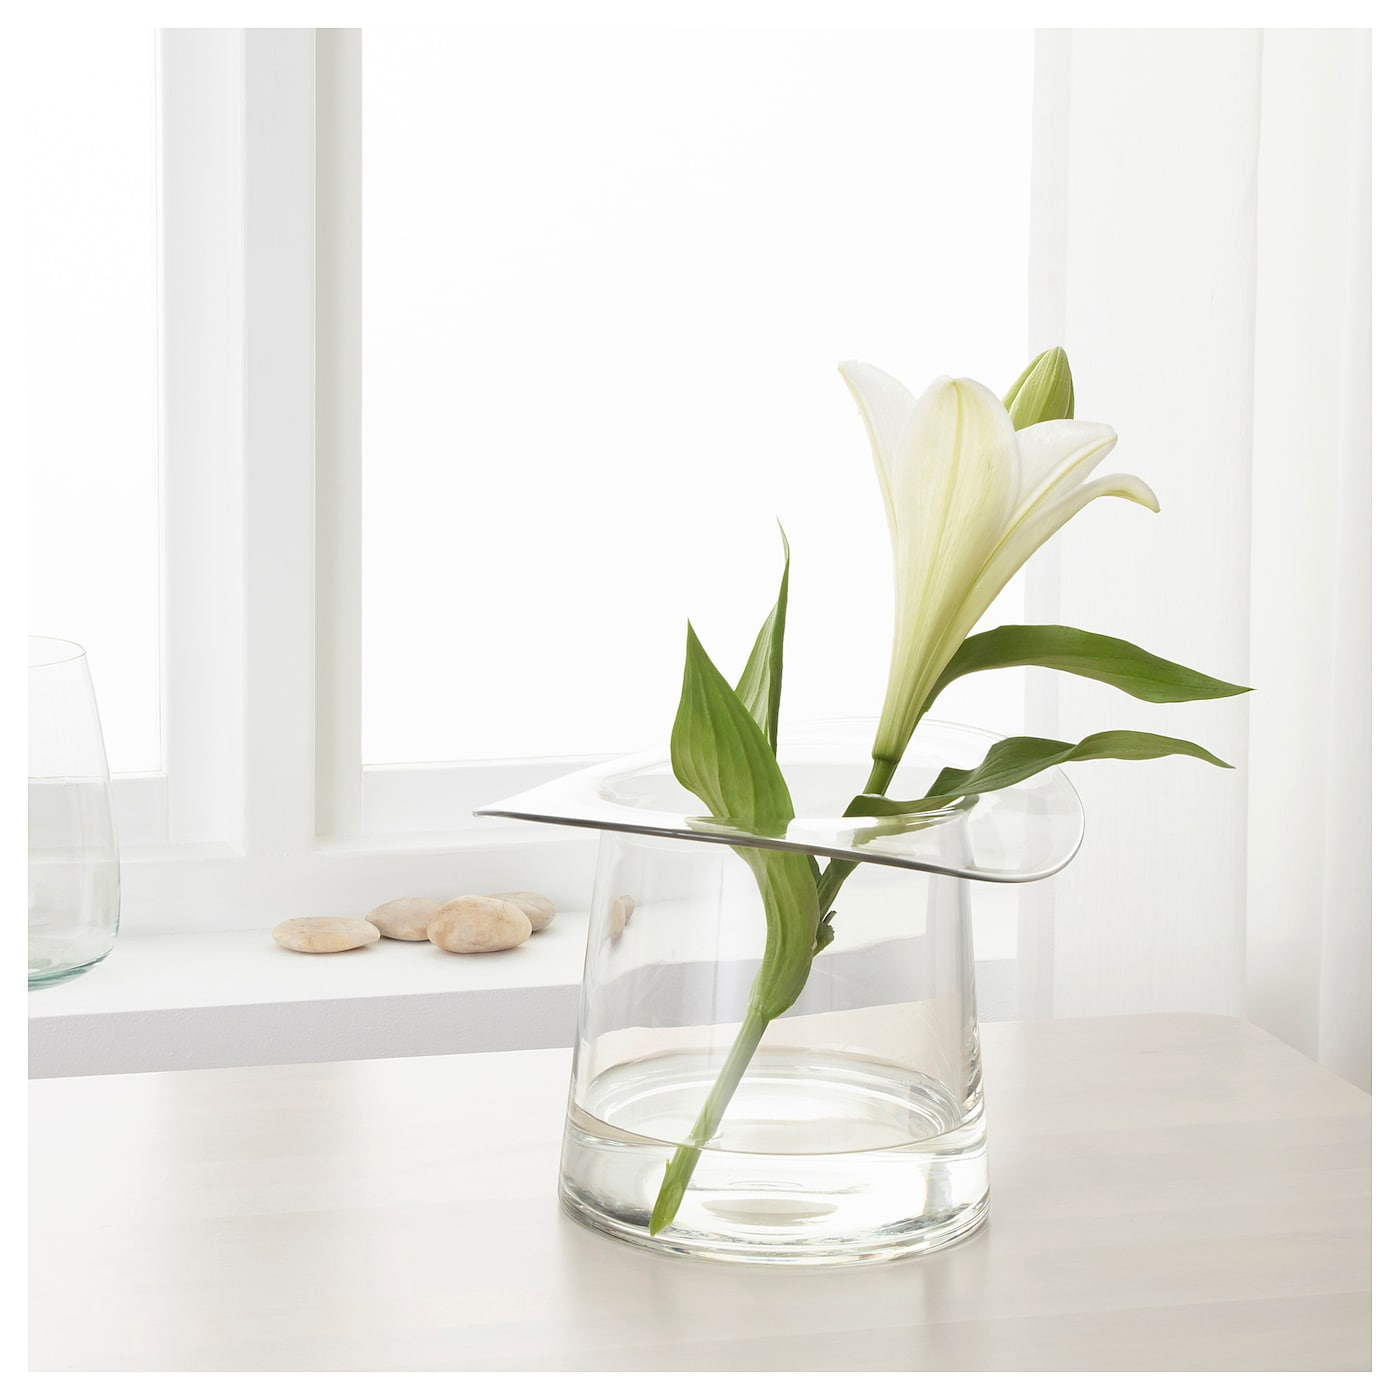 omedelbar vase verre transparent 19 cm ikea. Black Bedroom Furniture Sets. Home Design Ideas